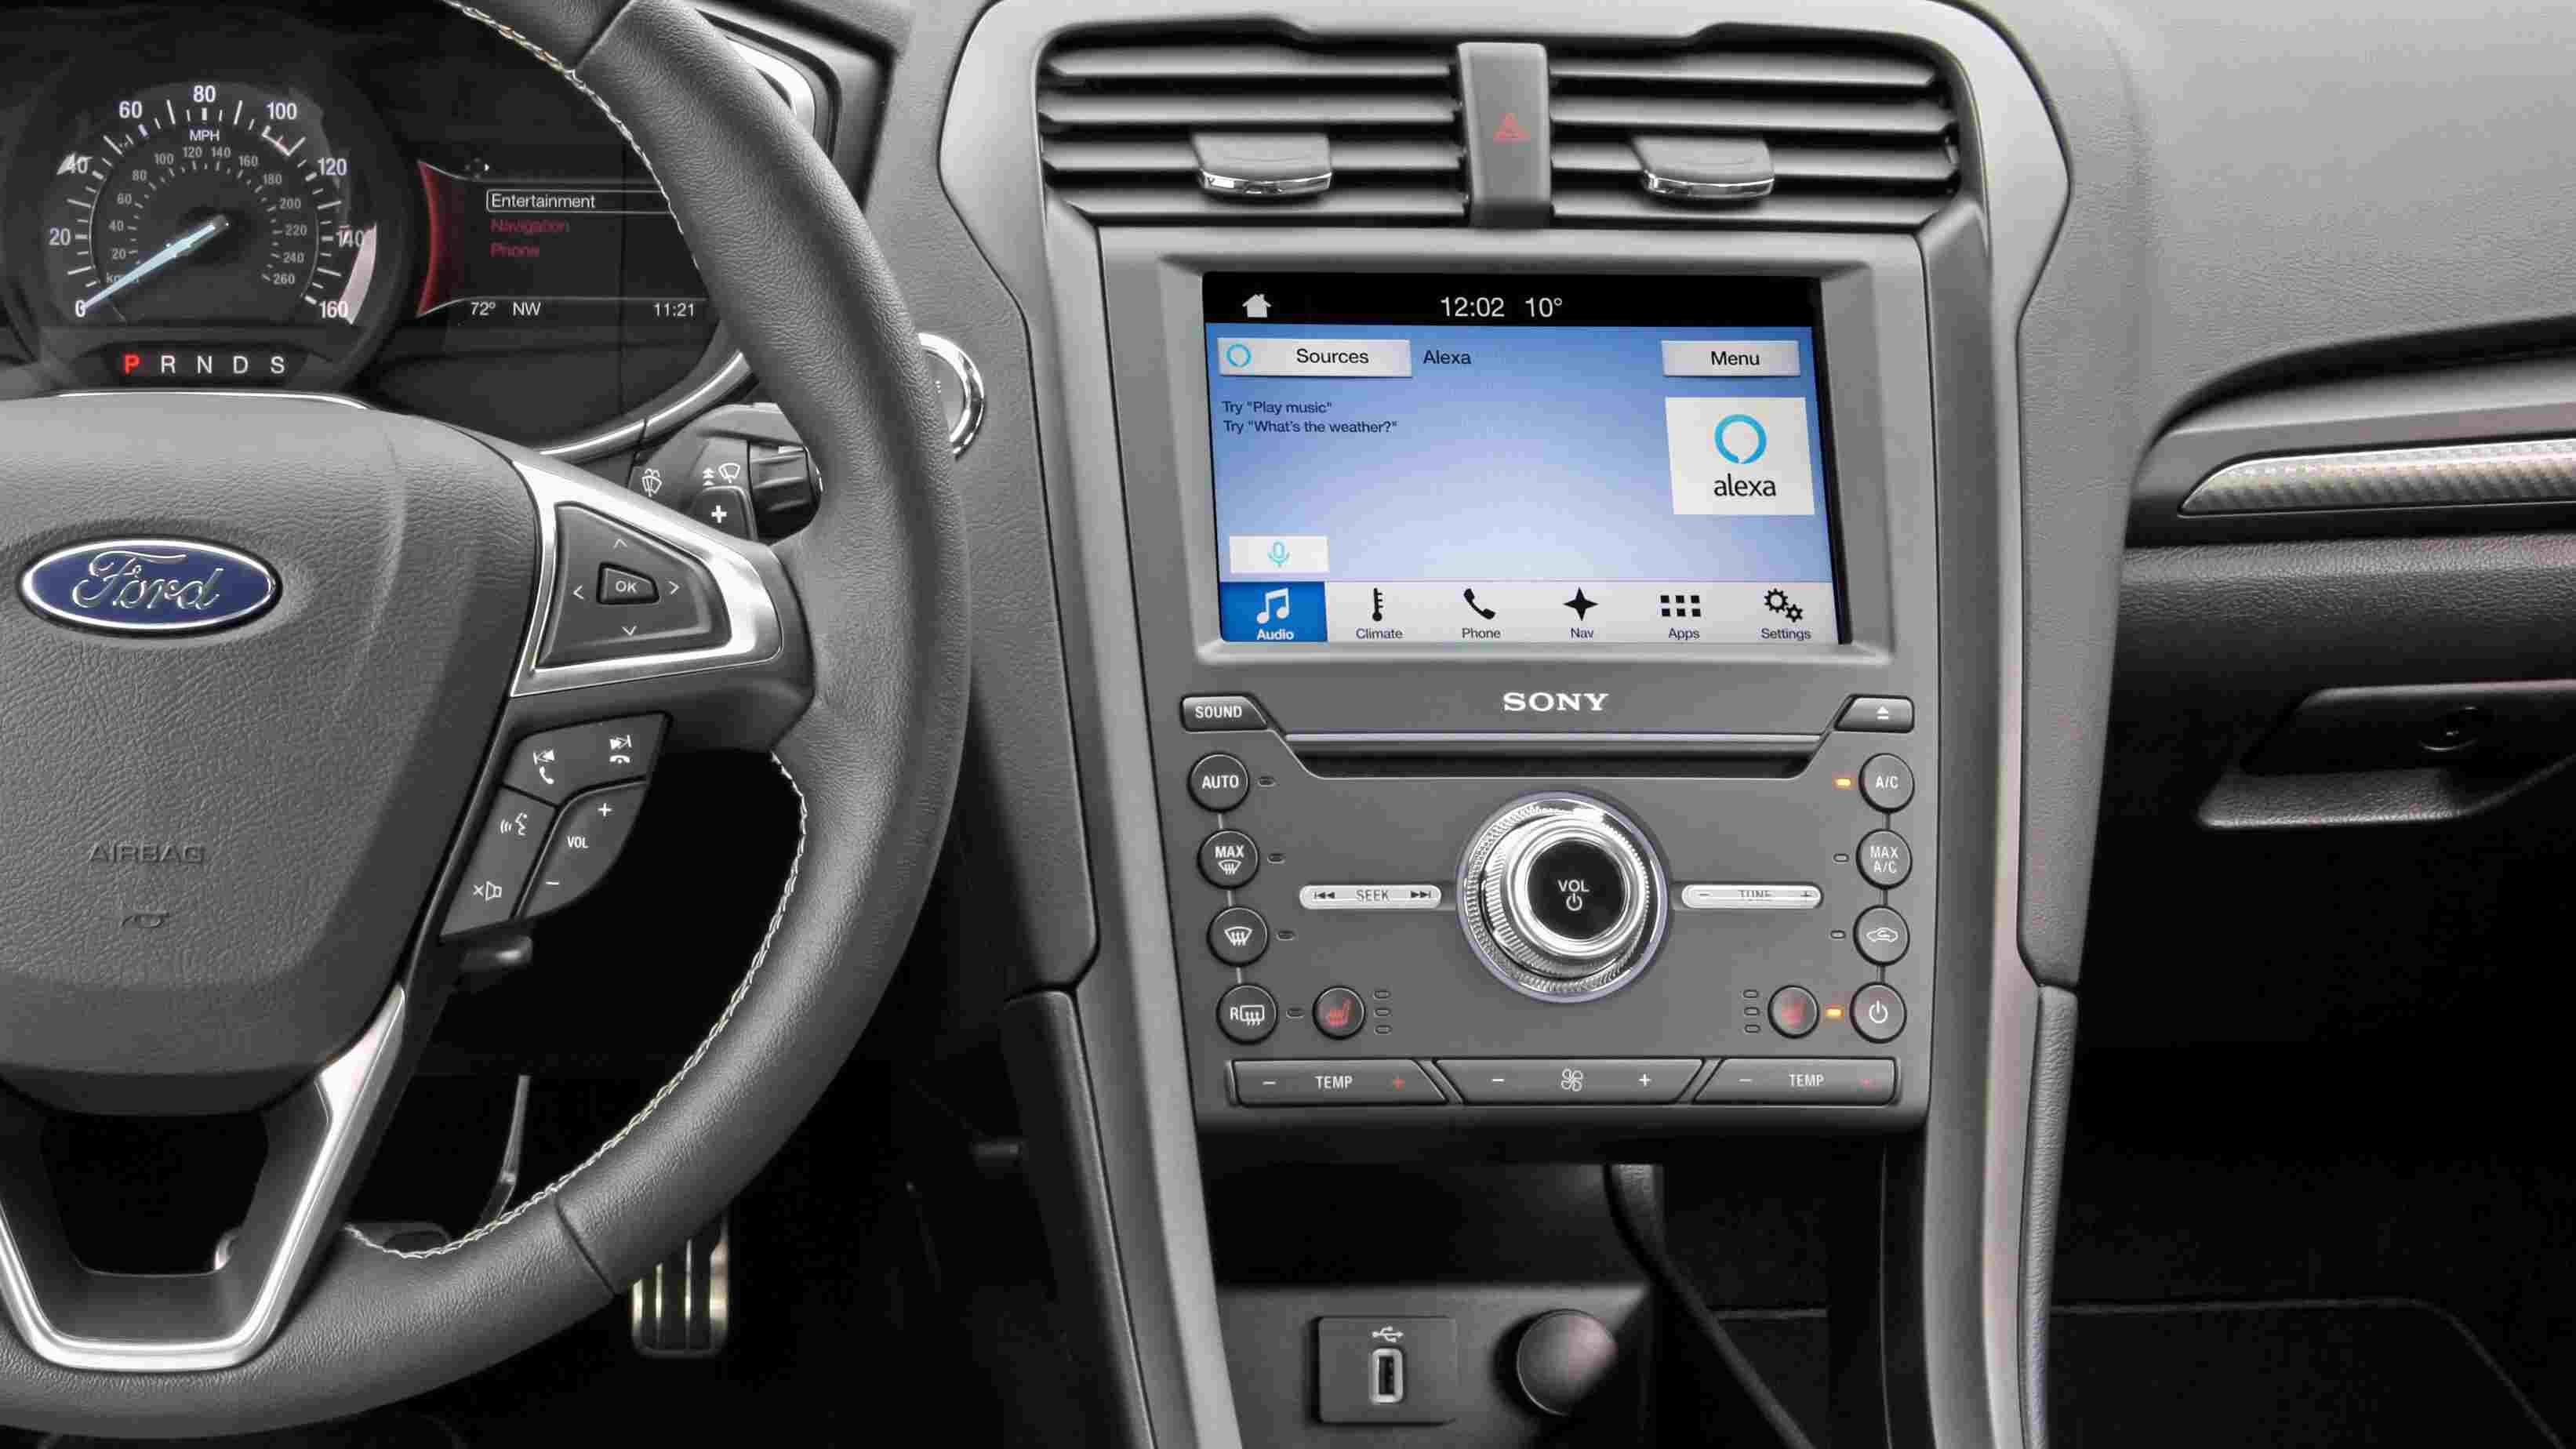 Alexa integrated into a Ford vehicle.